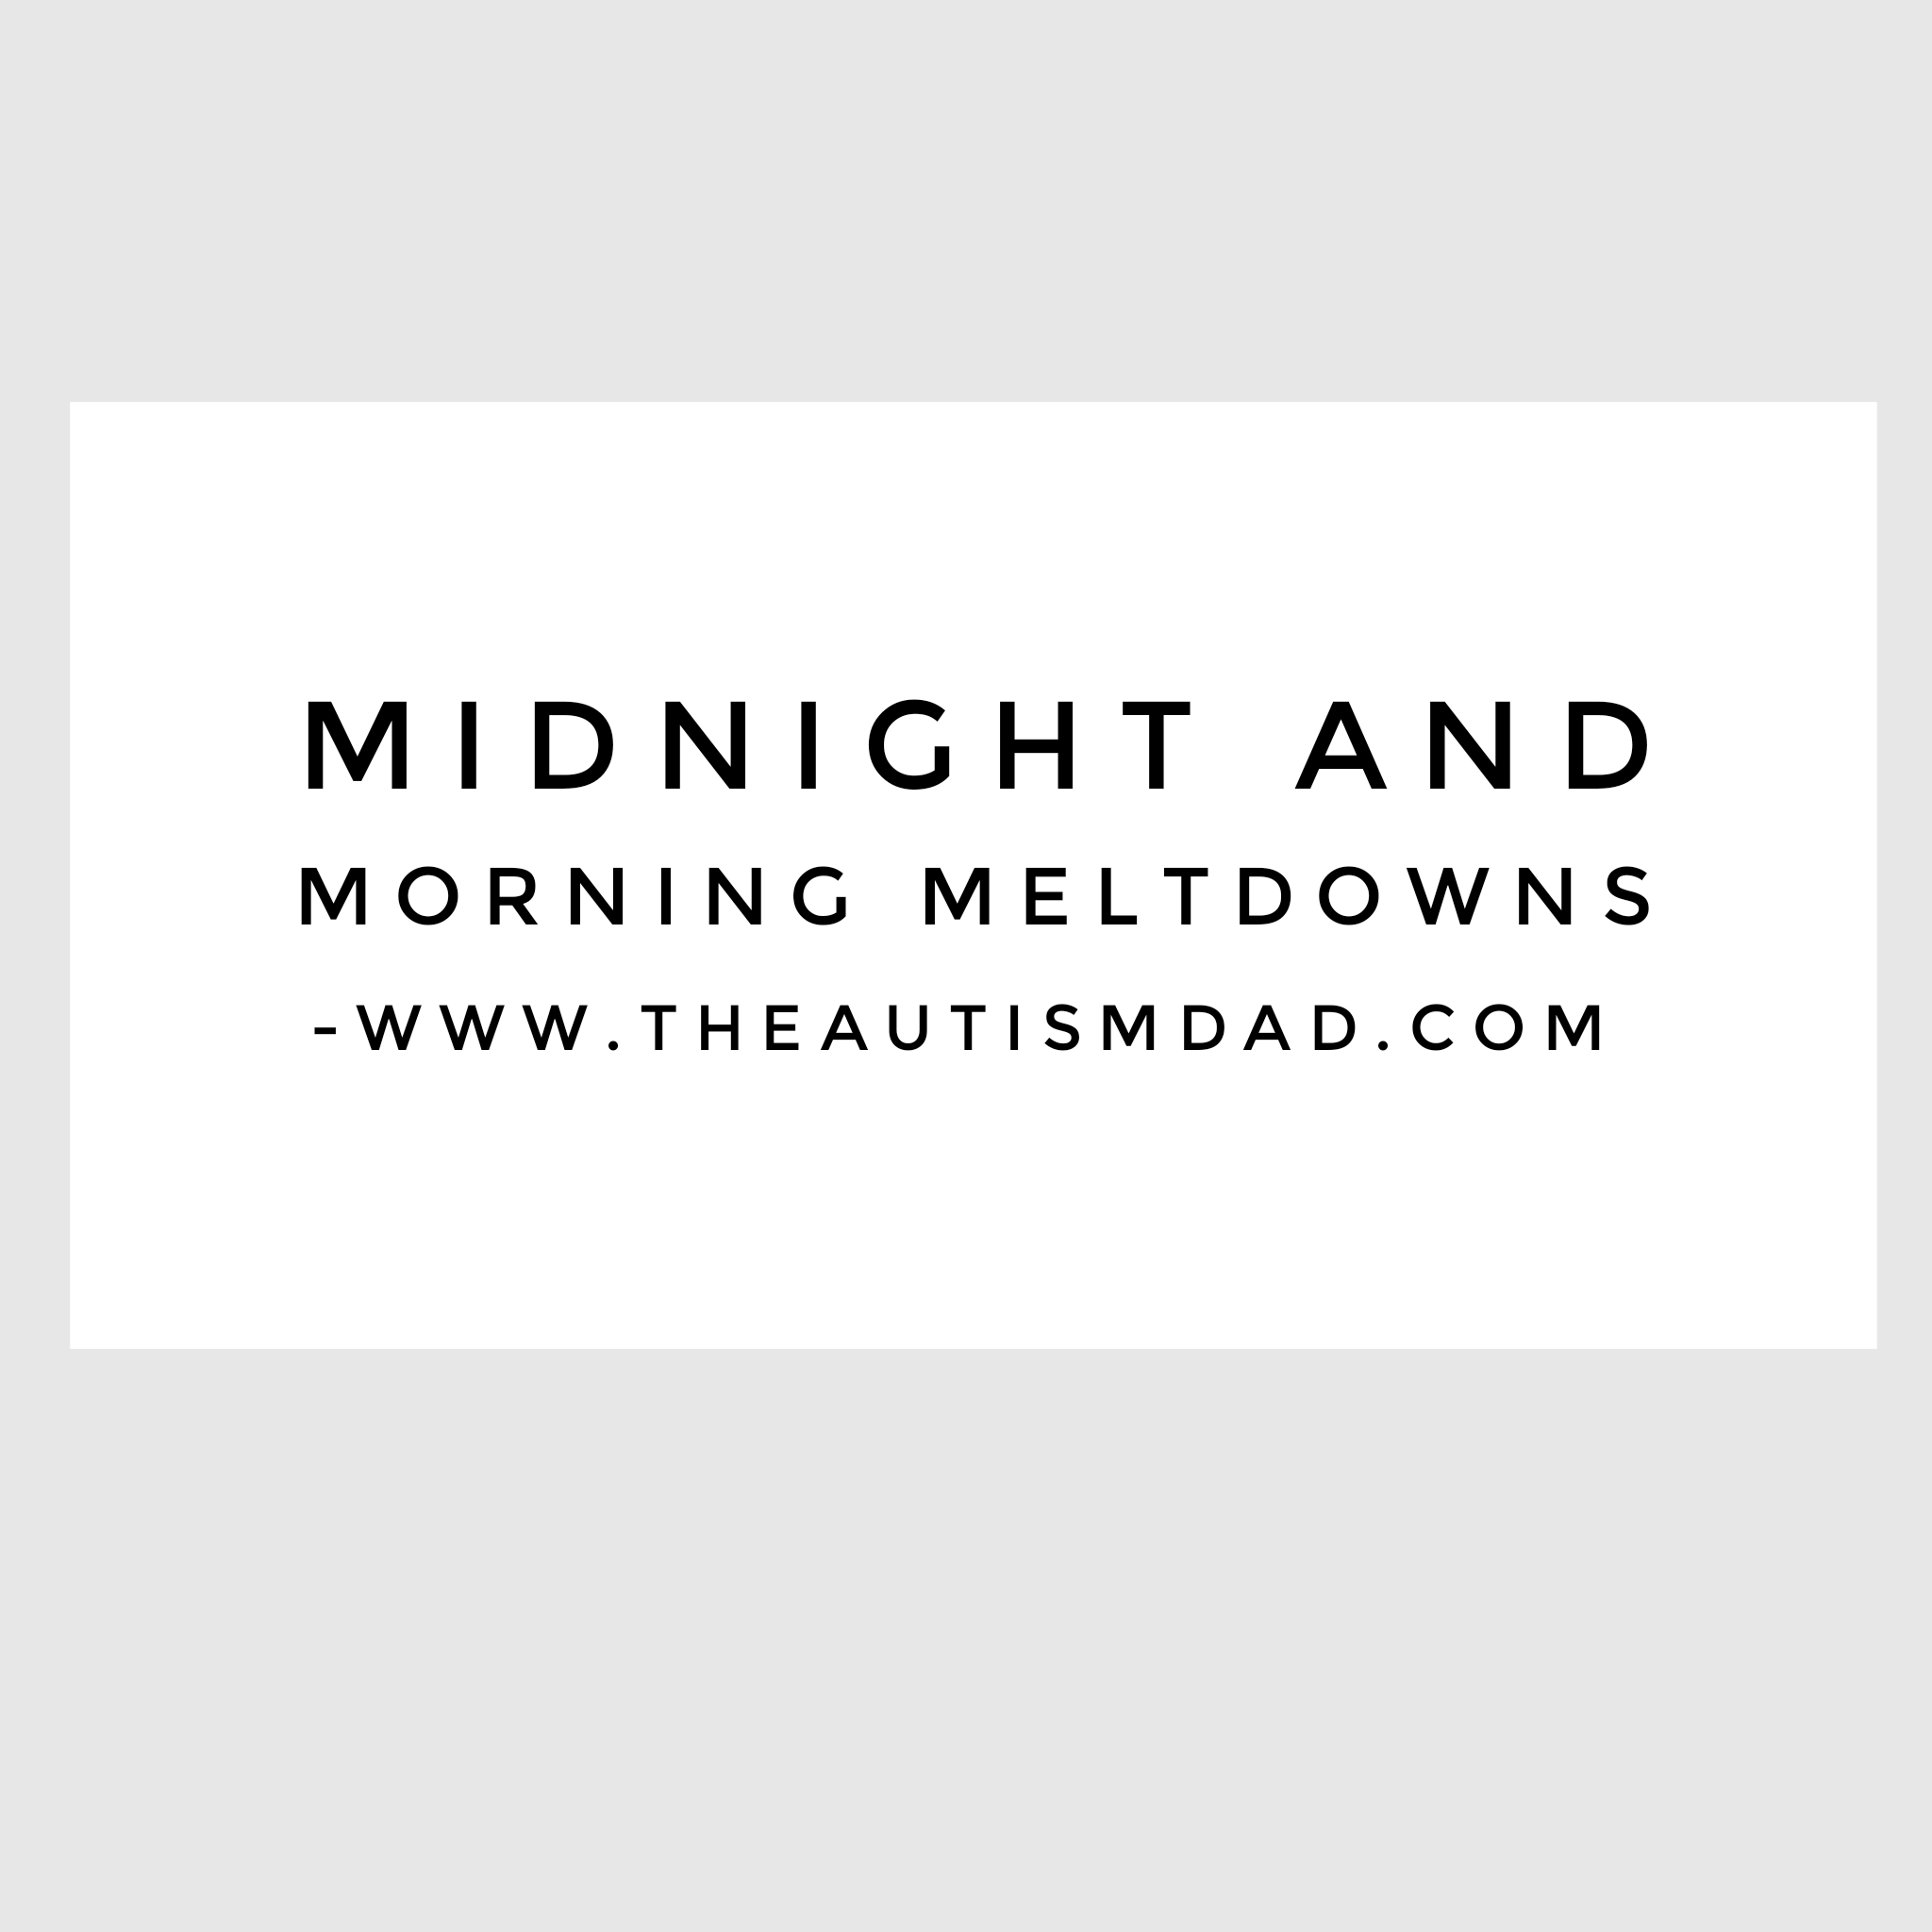 Midnight and morning meltdowns